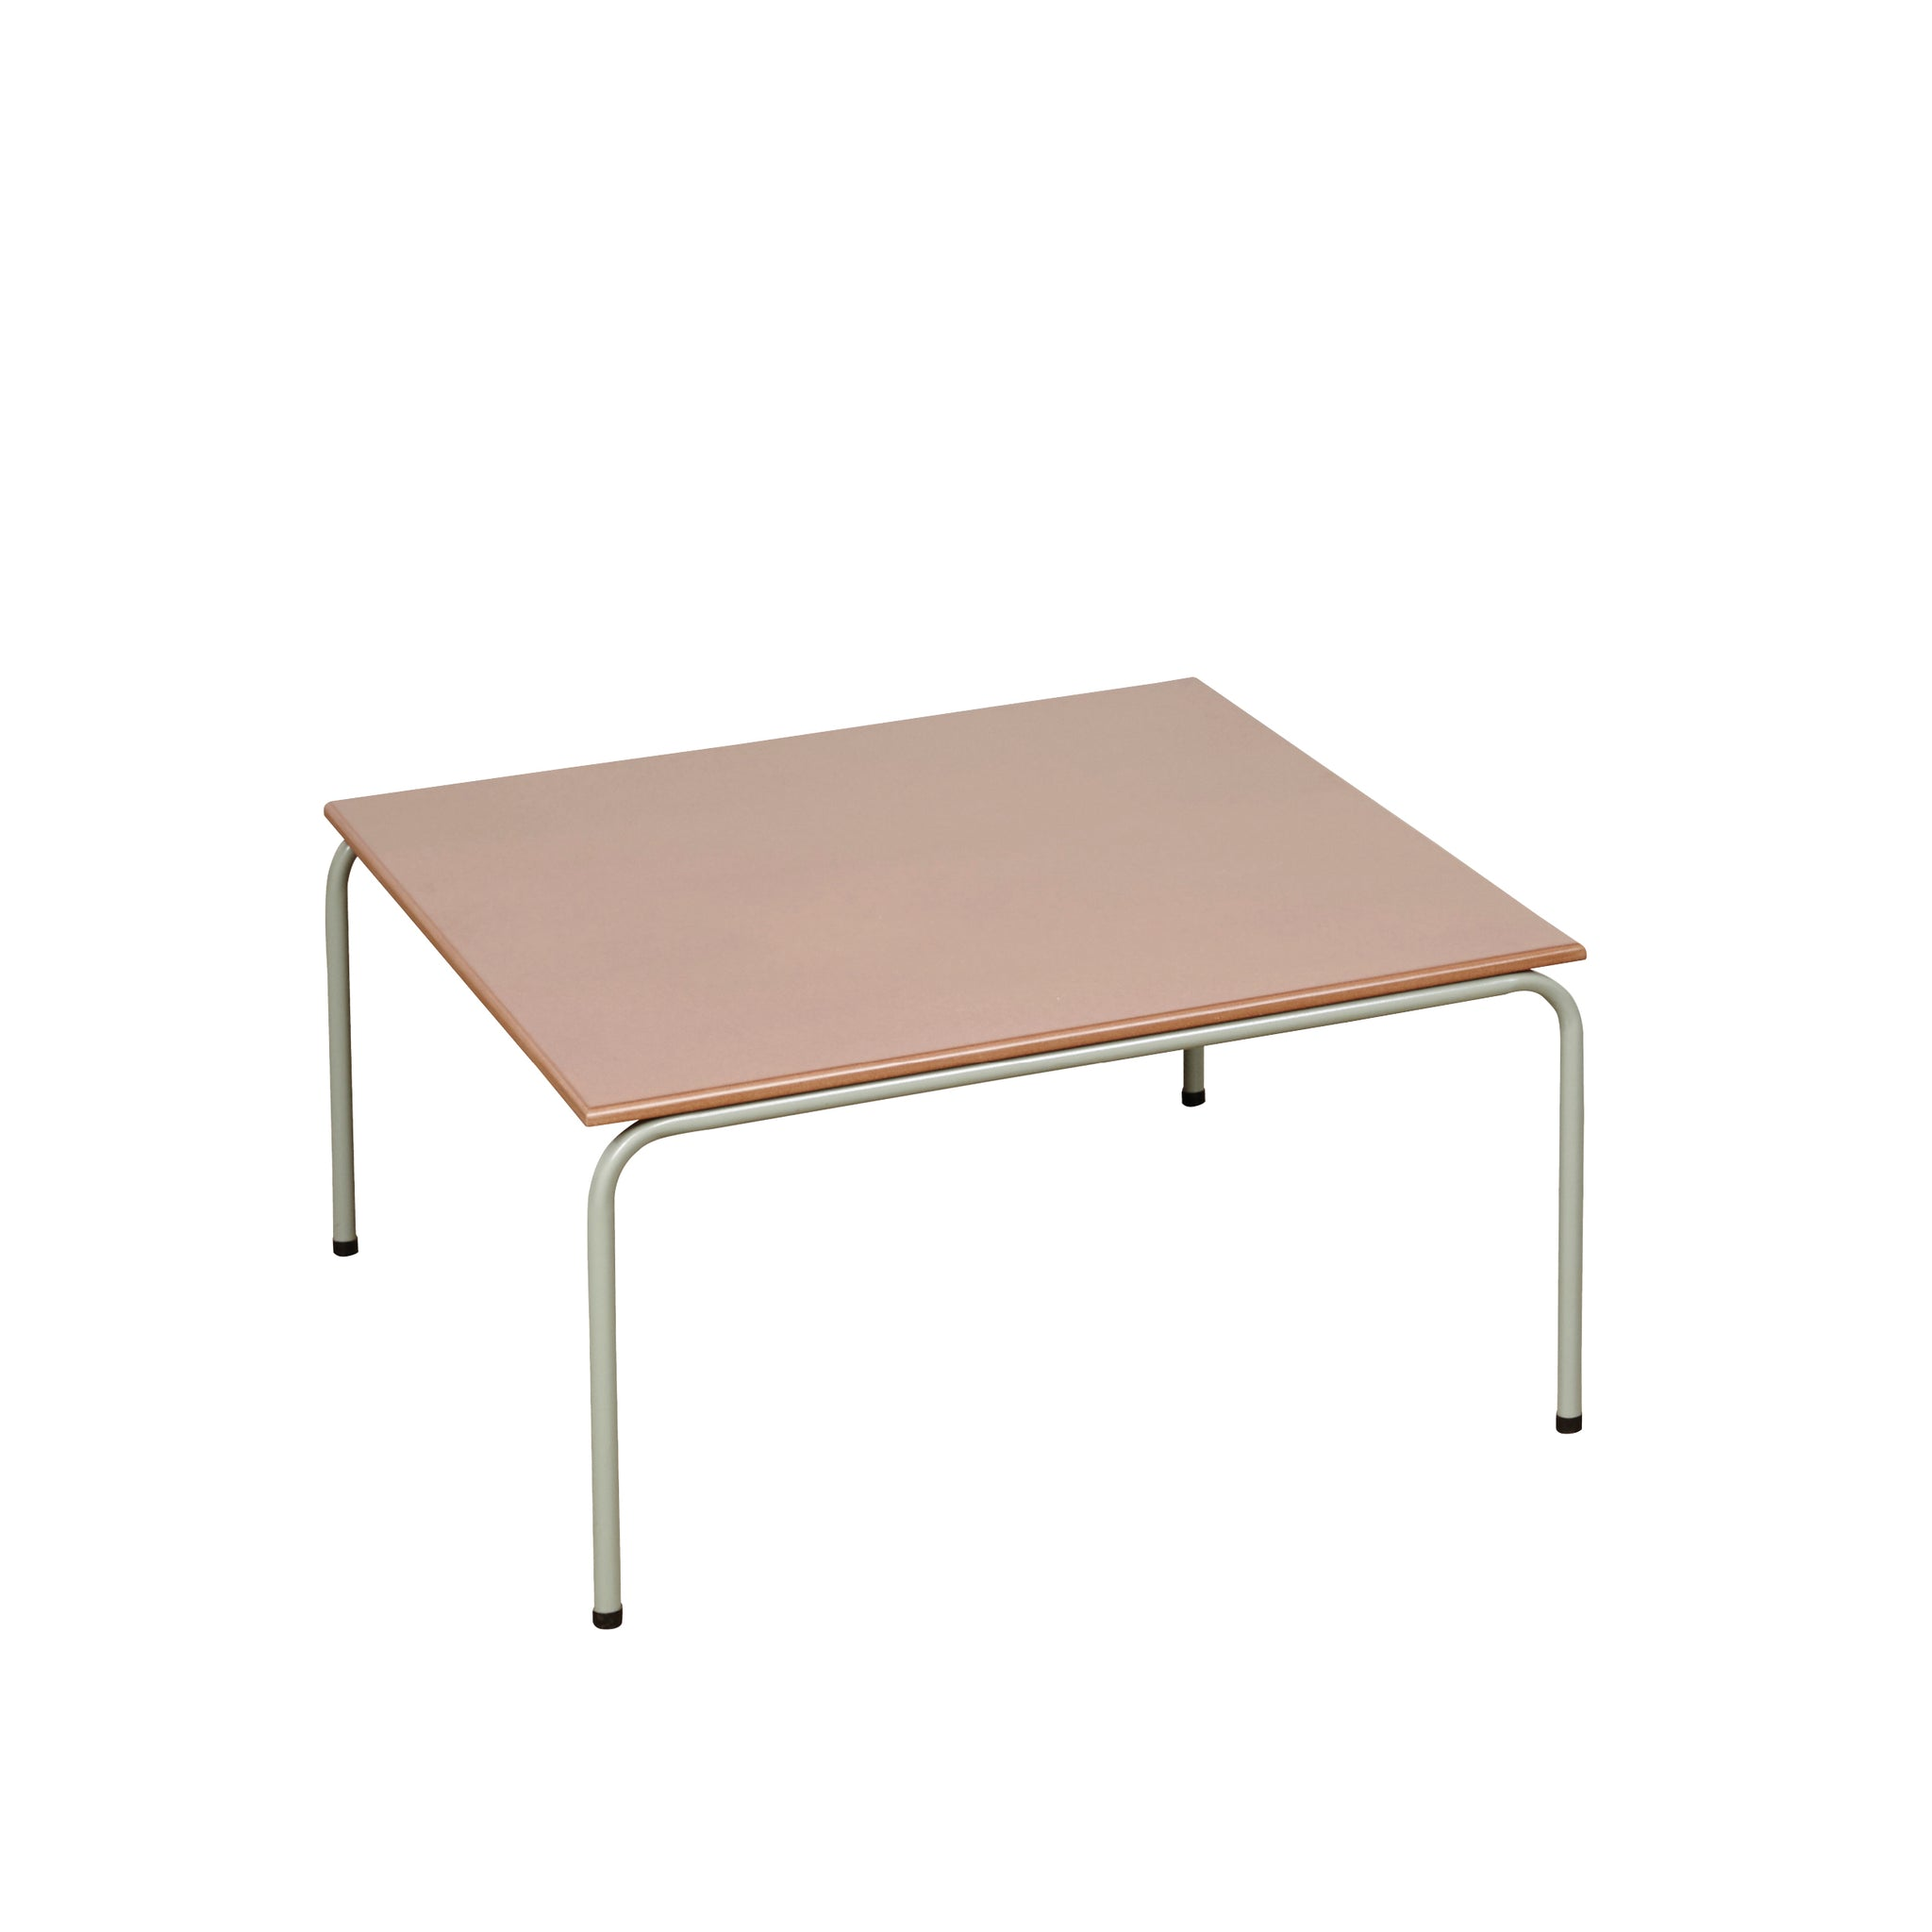 Hedcor Grade R MDF double table